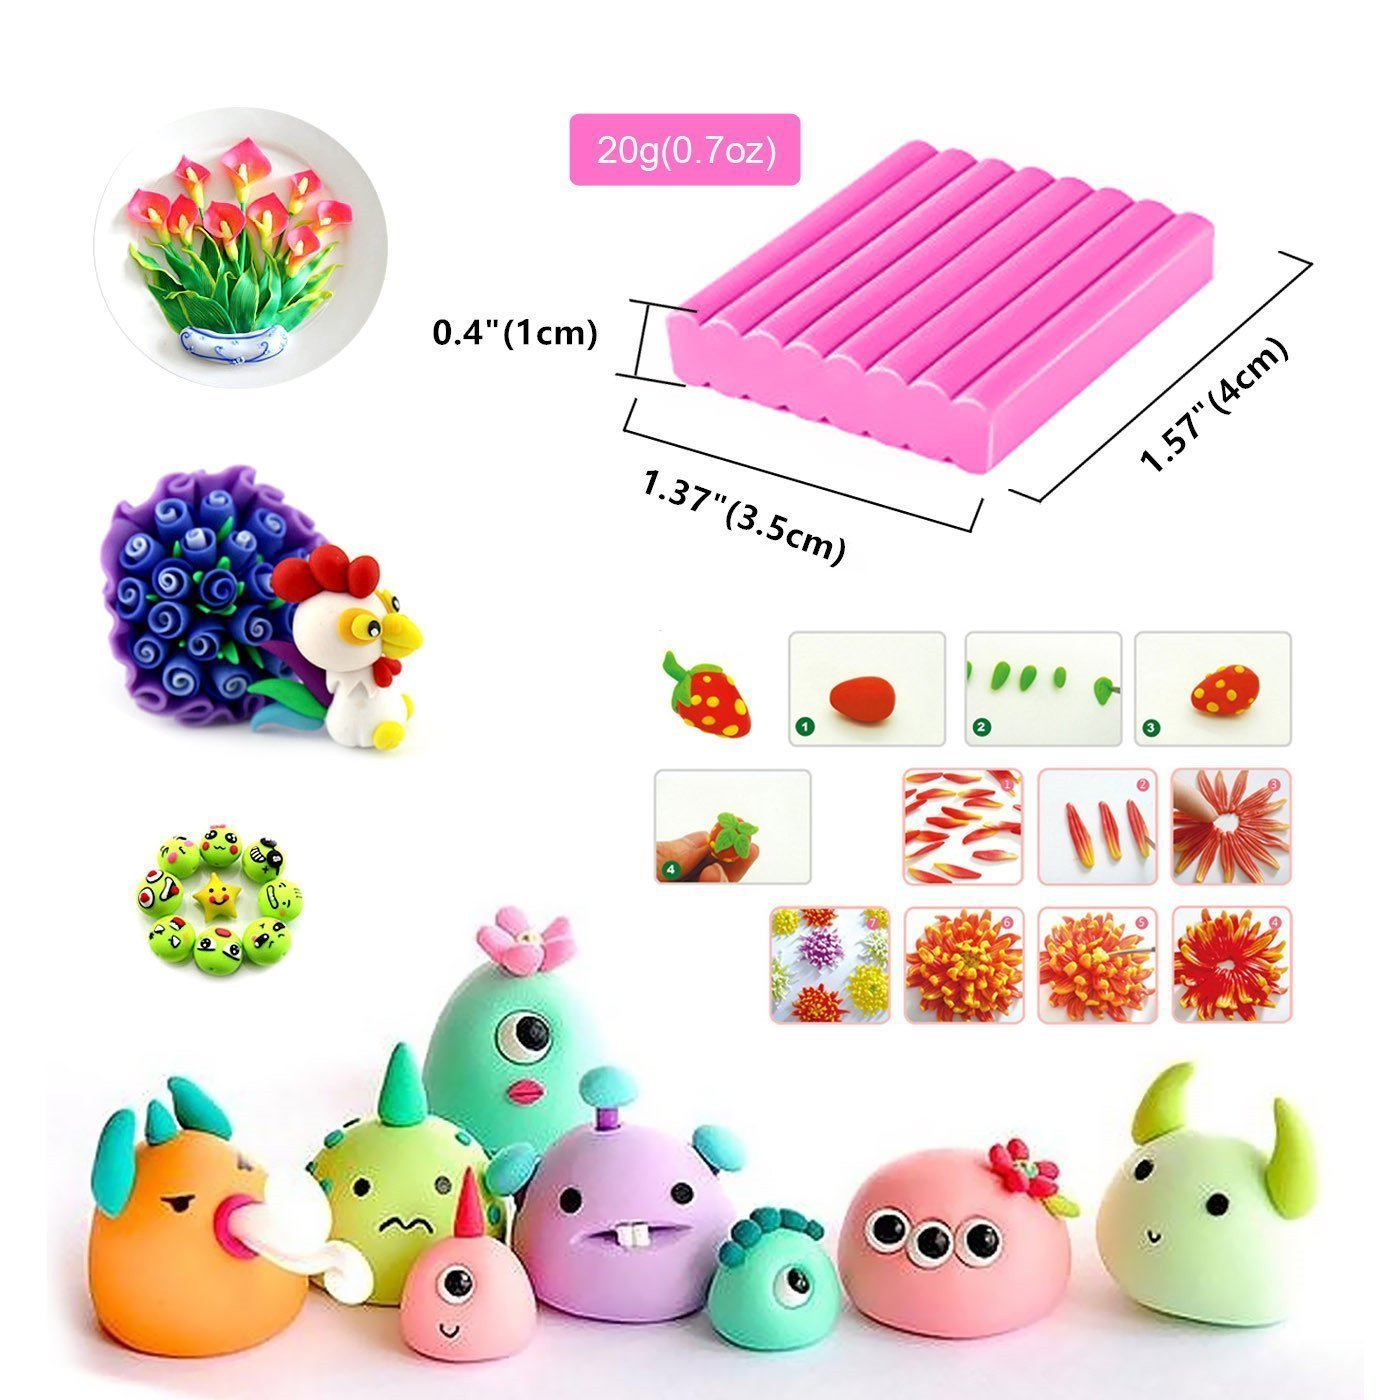 Rubikliss Polymer Clay Oven Bake Set,24 Color DIY Modeling Clay for kids, Oven Bake Clay with Modeling Tool Set Fimo Clay Toy Best gift for Children